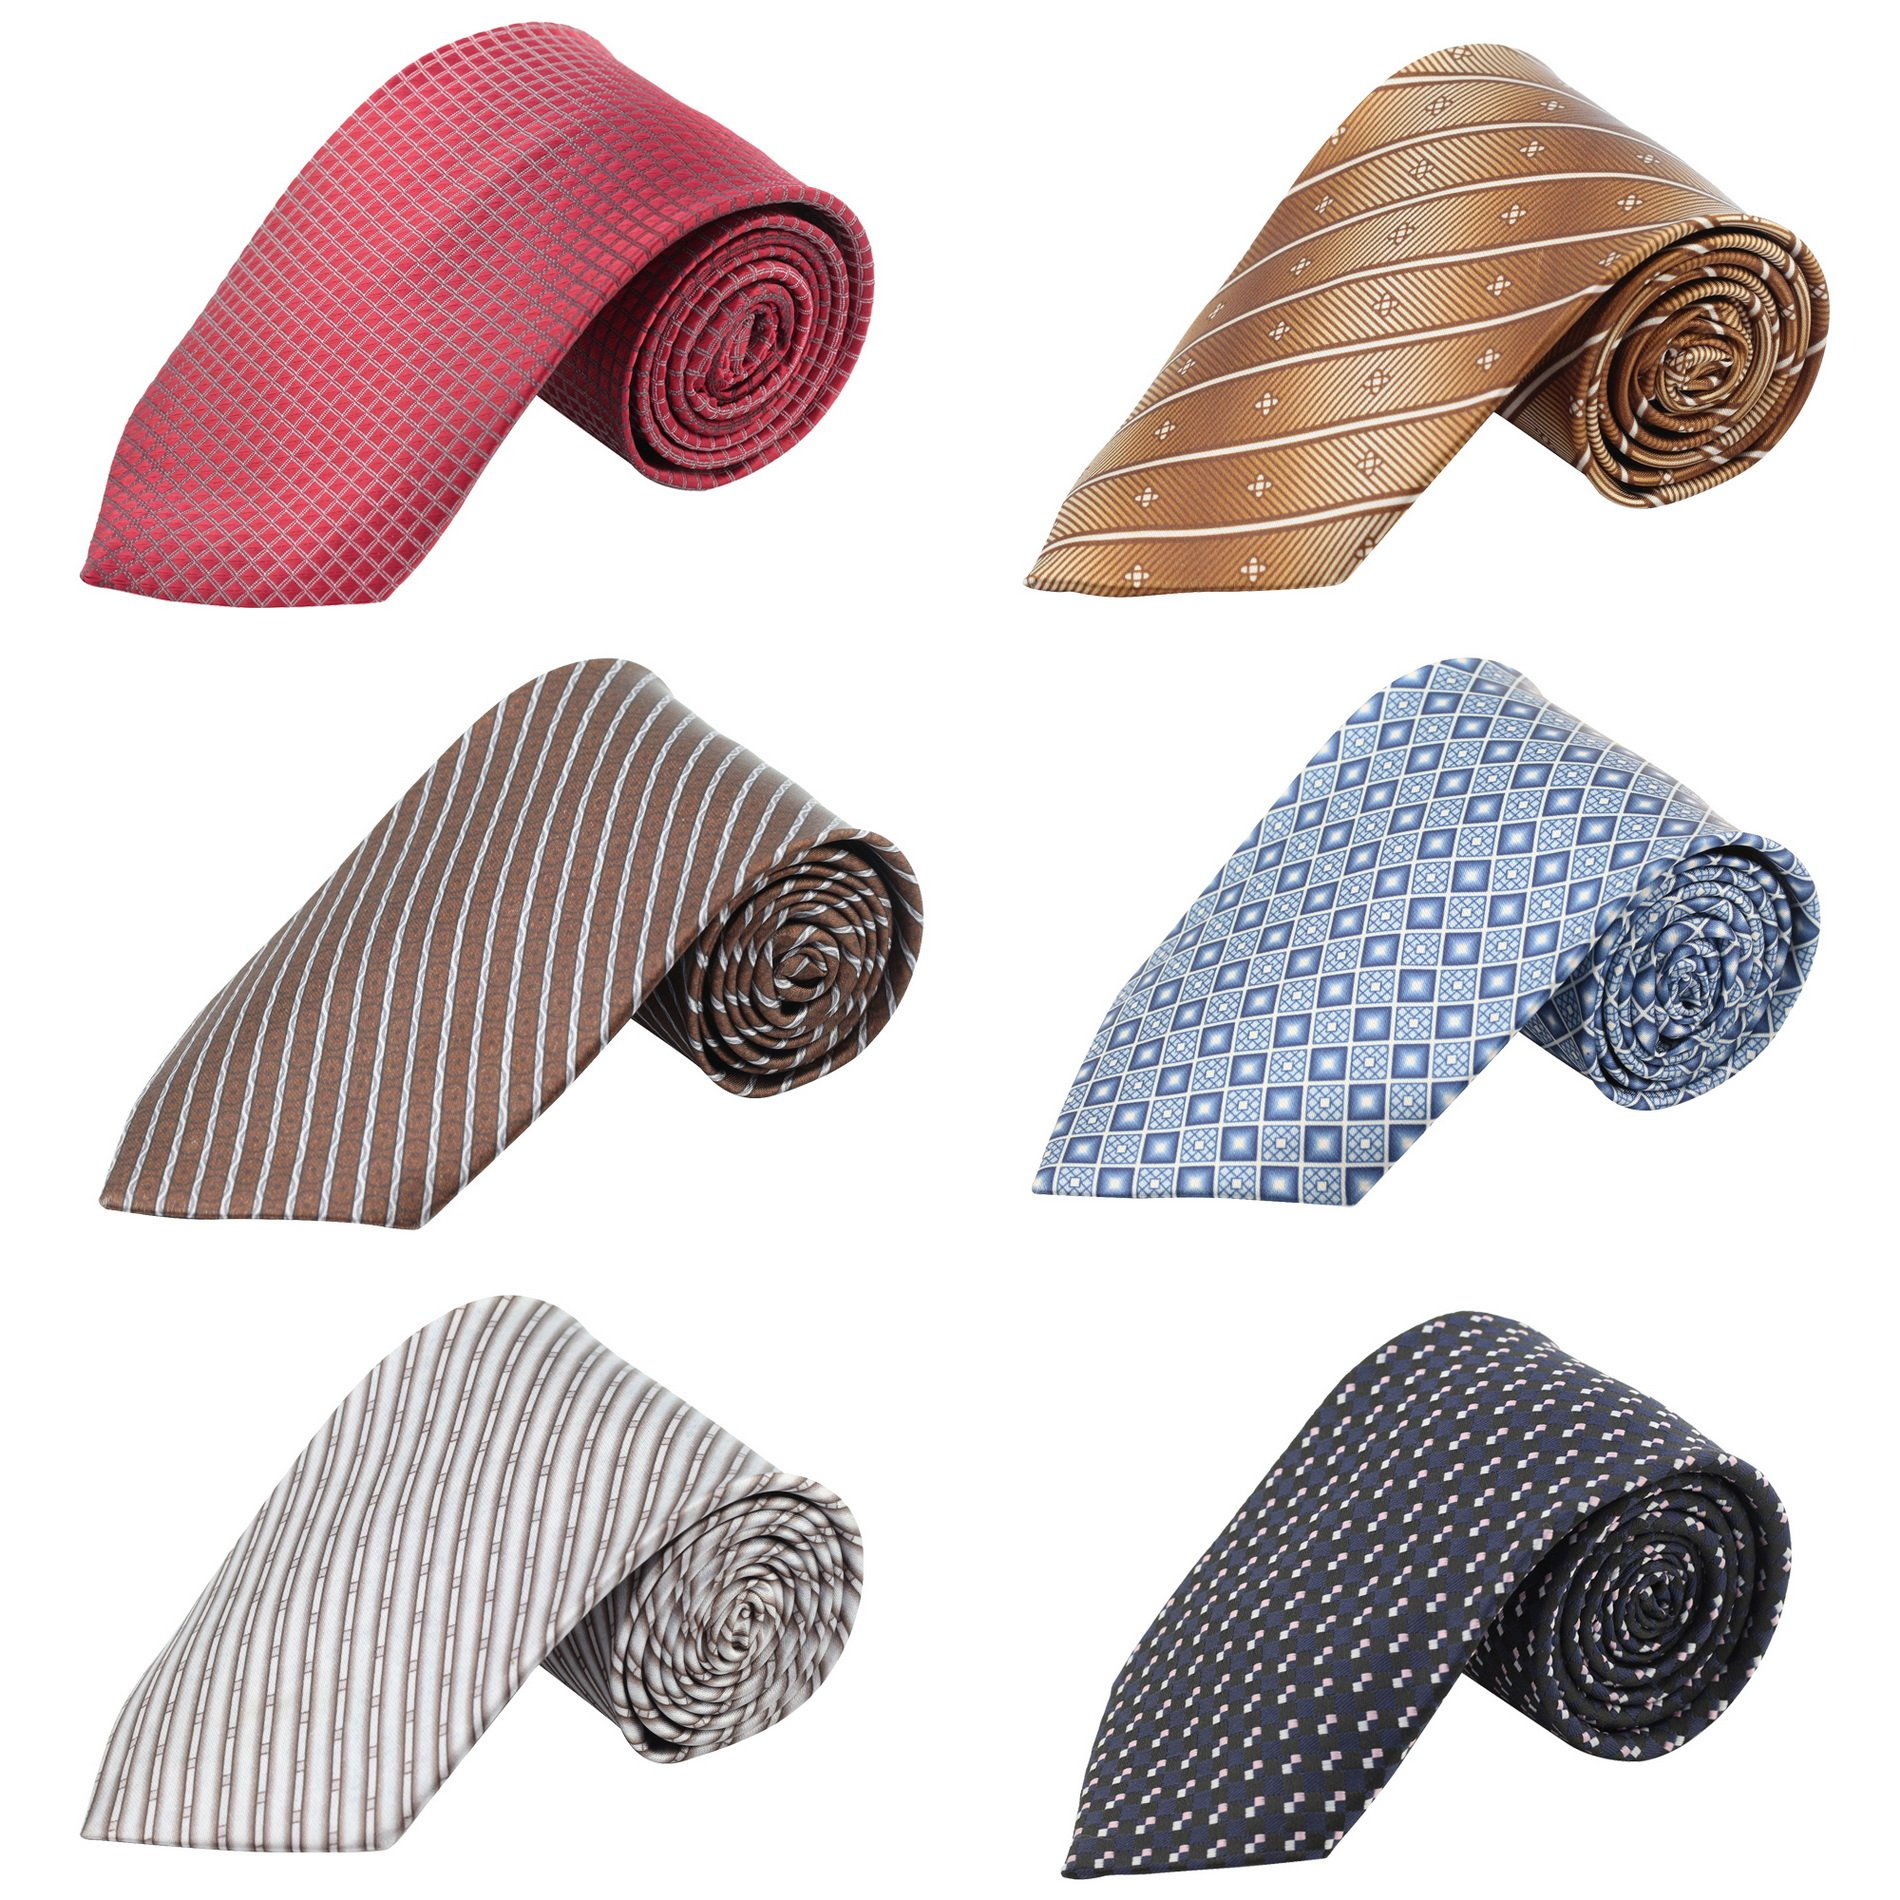 Mens Fashion Business Solid, Woven, Stripes Tie 6 Set Mixed (Set 3-8)